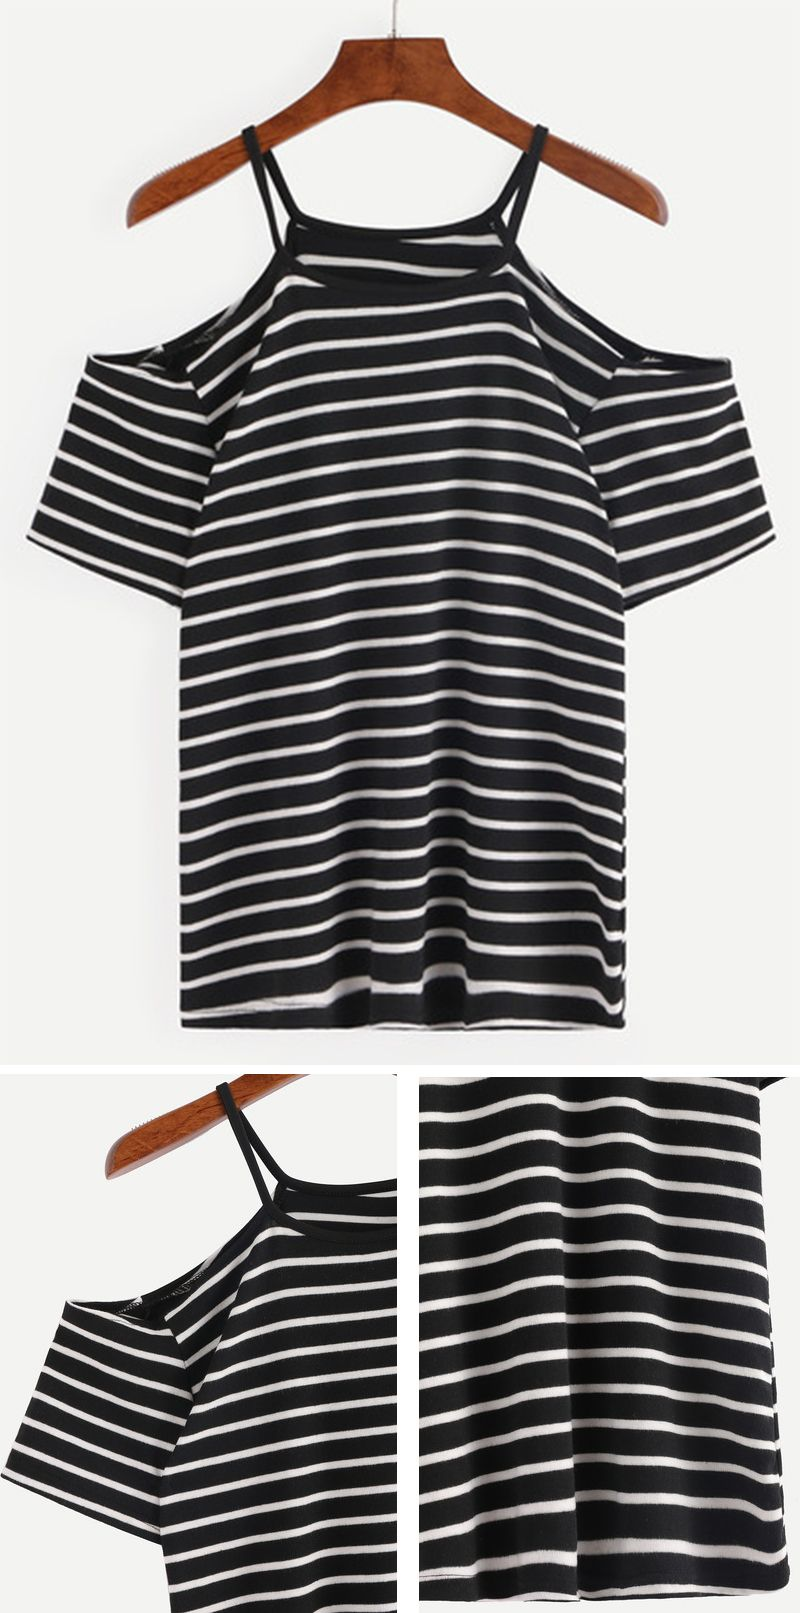 Black t shirt with white stripes - Cold Shoulder Black White Striped T Shirt